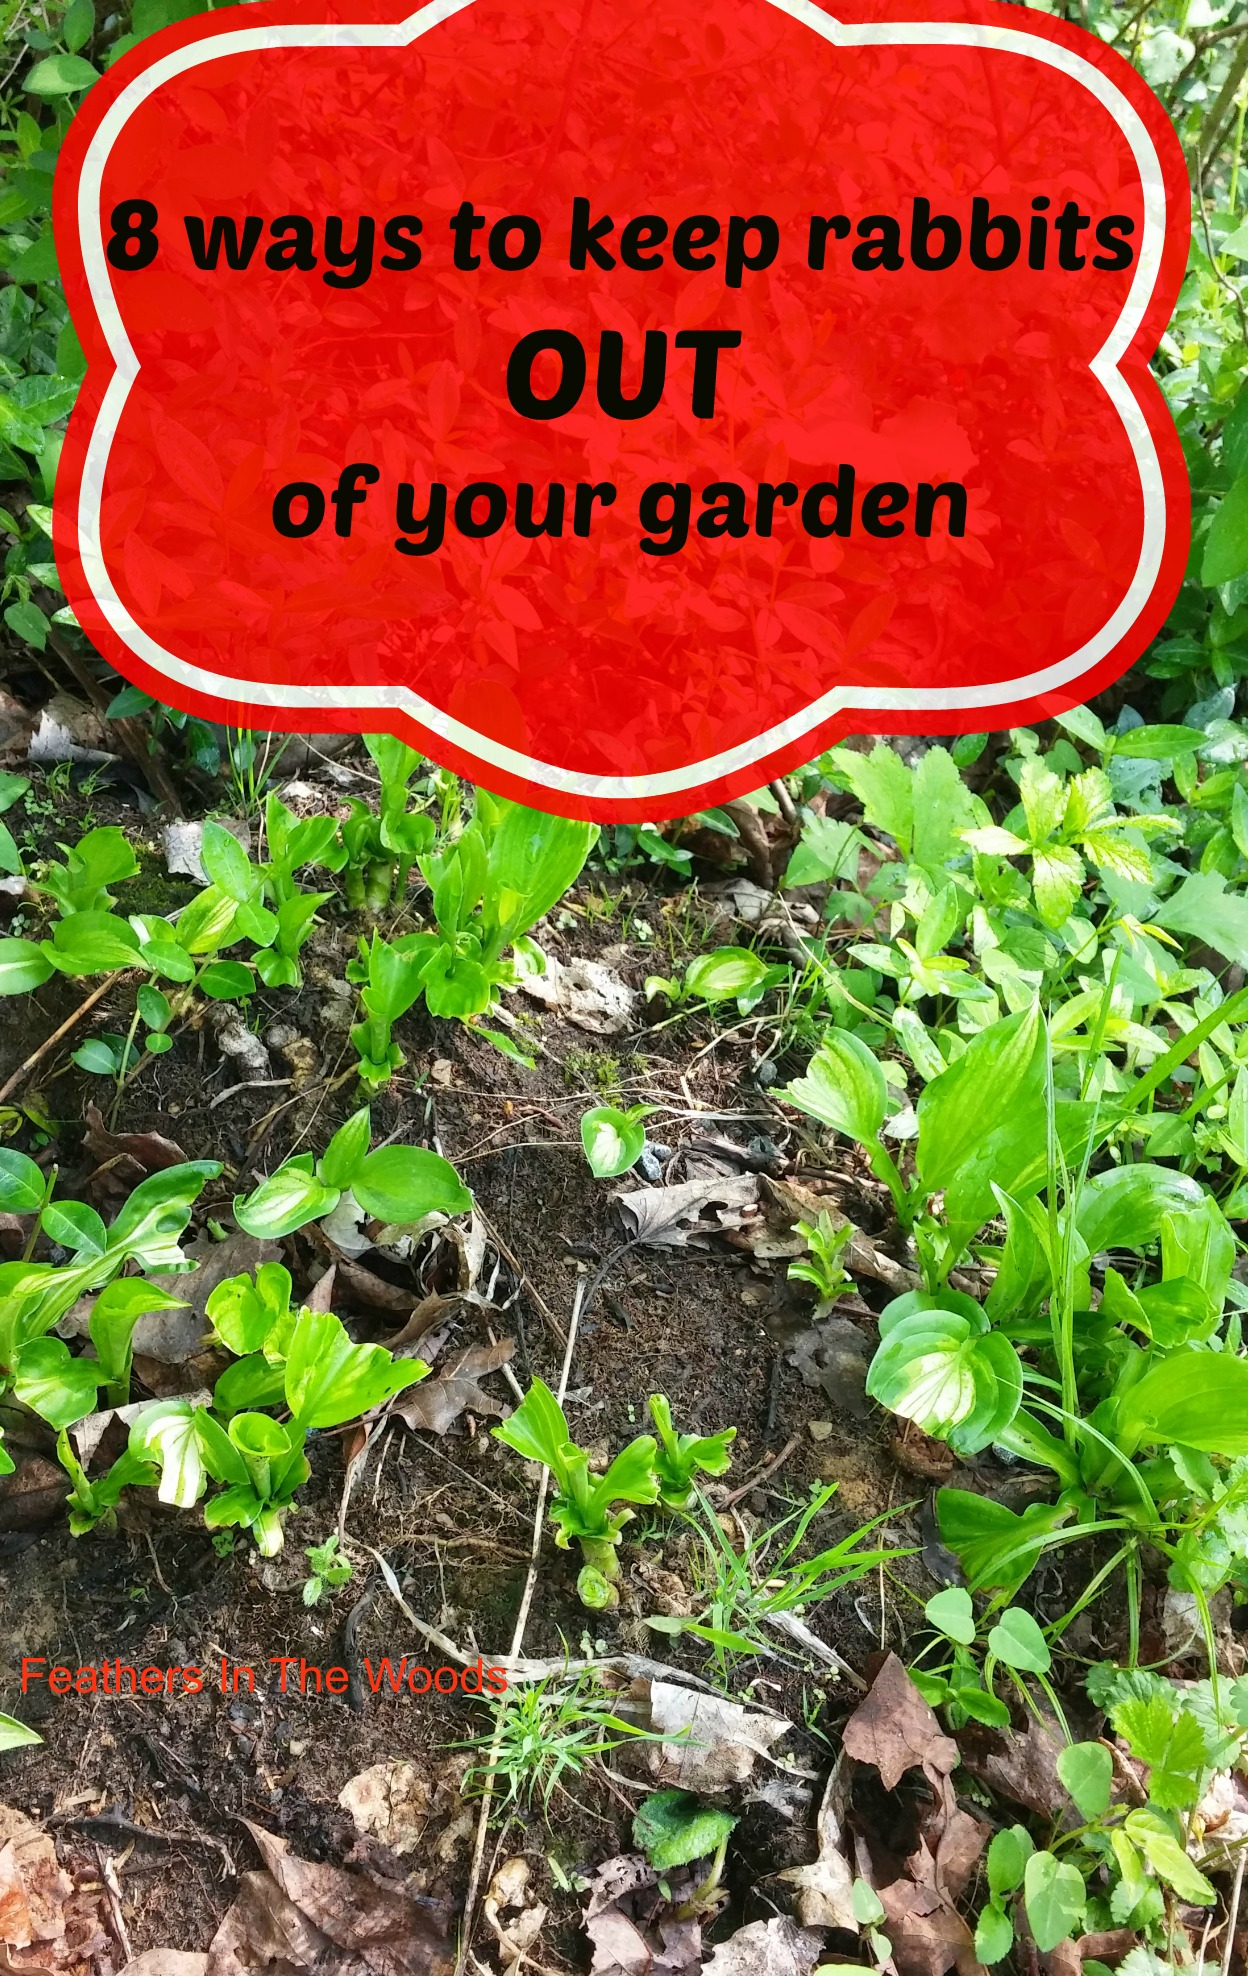 8 Ways to keep rabbits out of your garden Homestead Bloggers Network